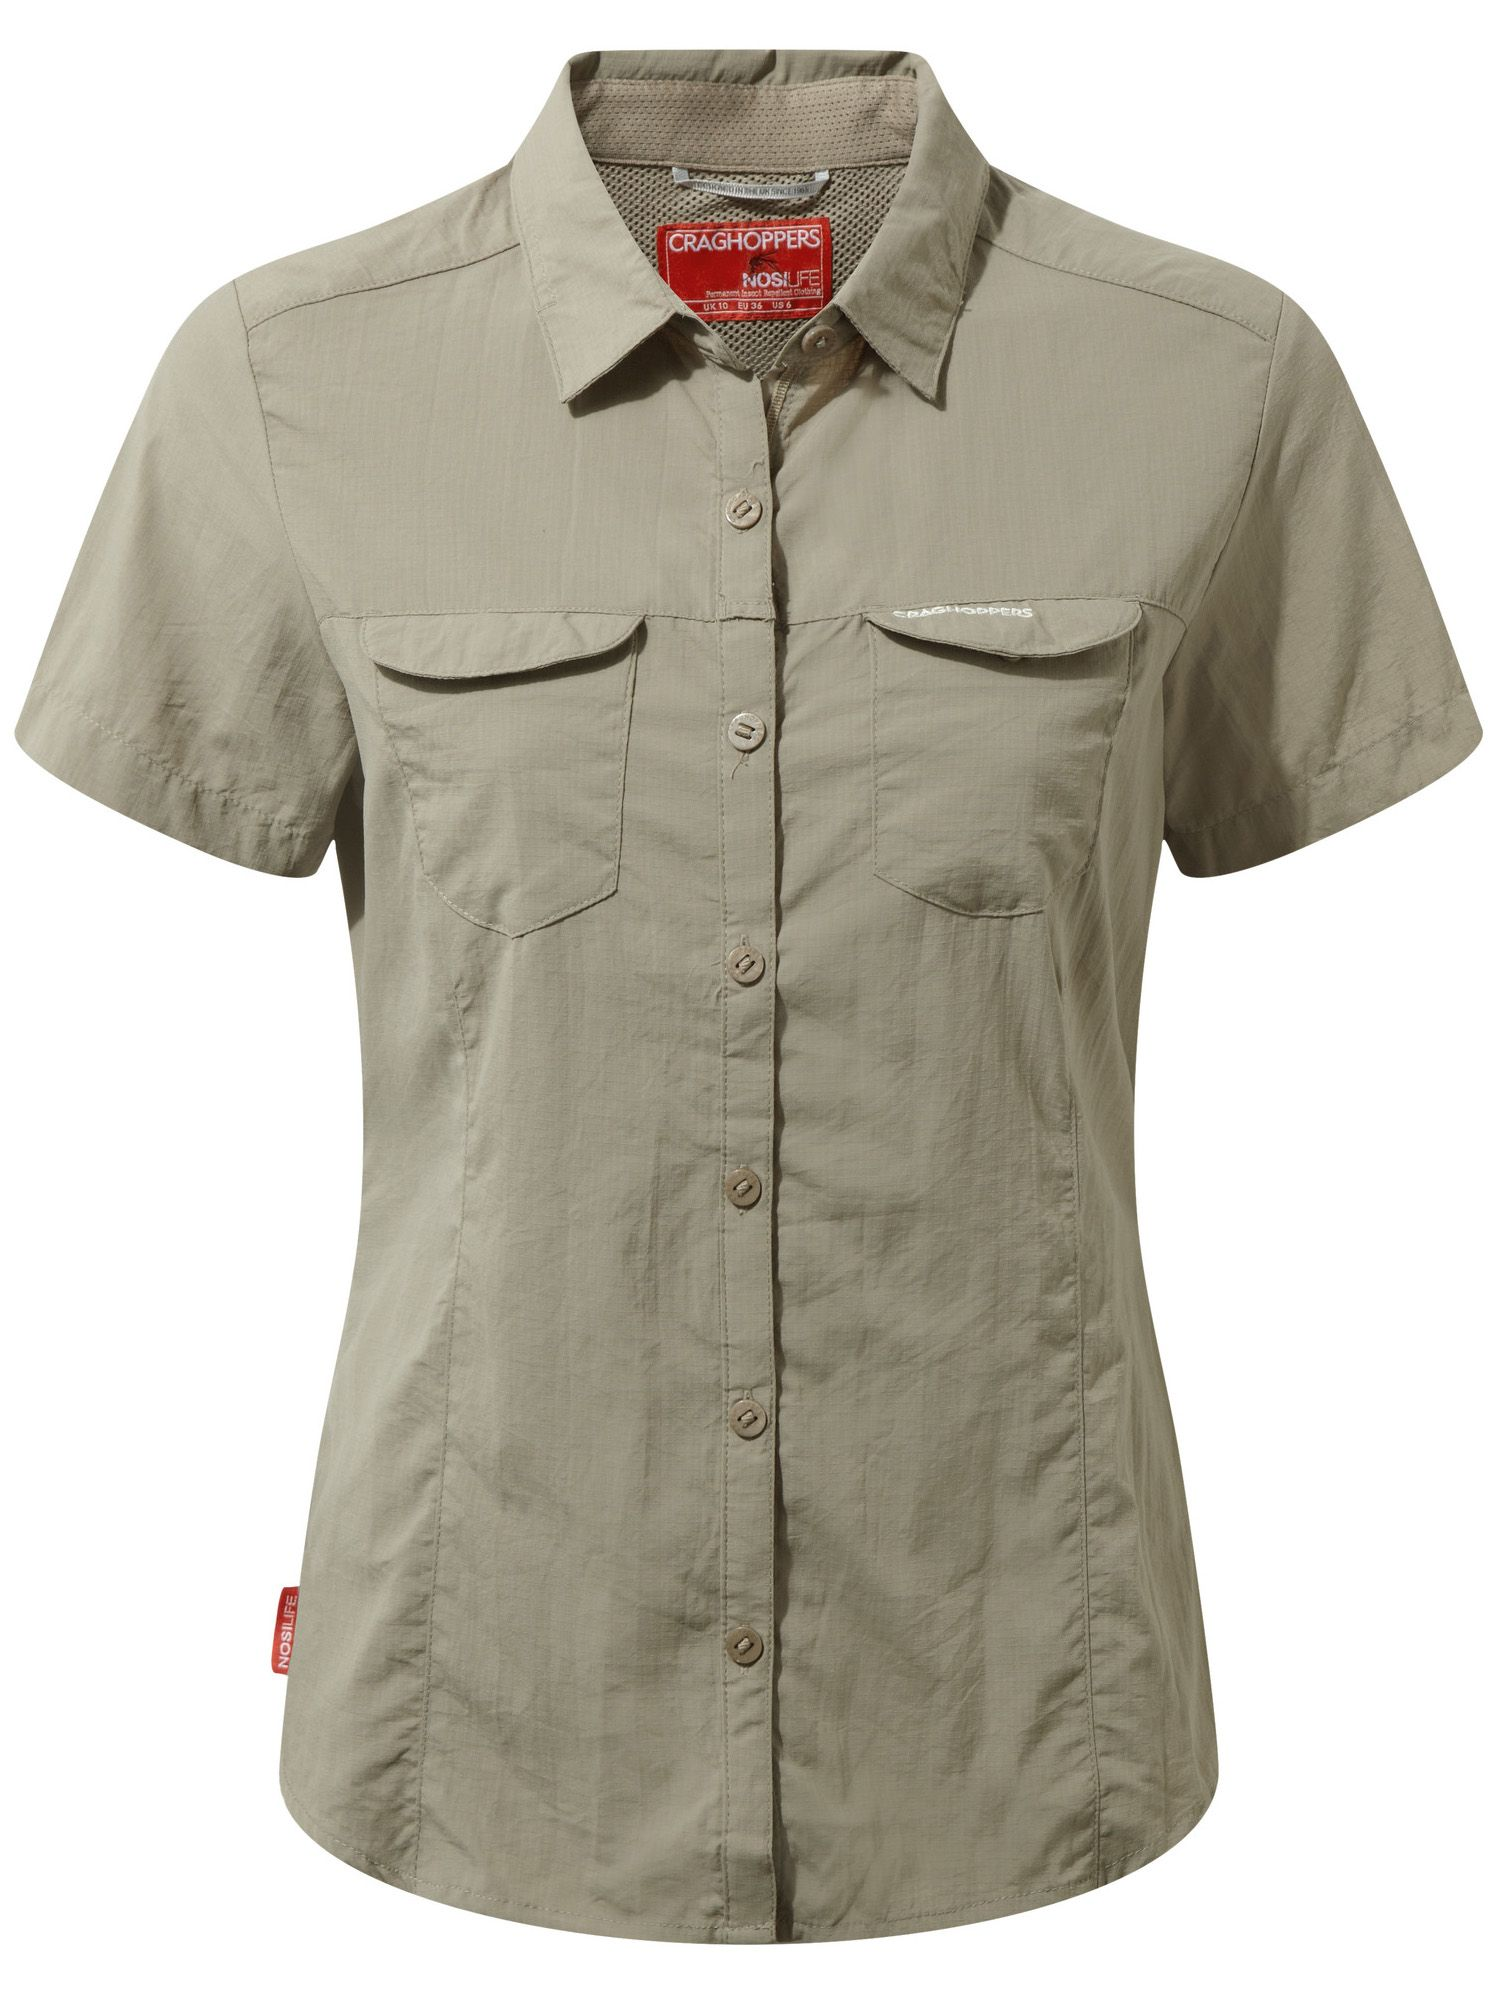 Craghoppers NosiLife Adventure Short Sleeved Shirt, Mushroom